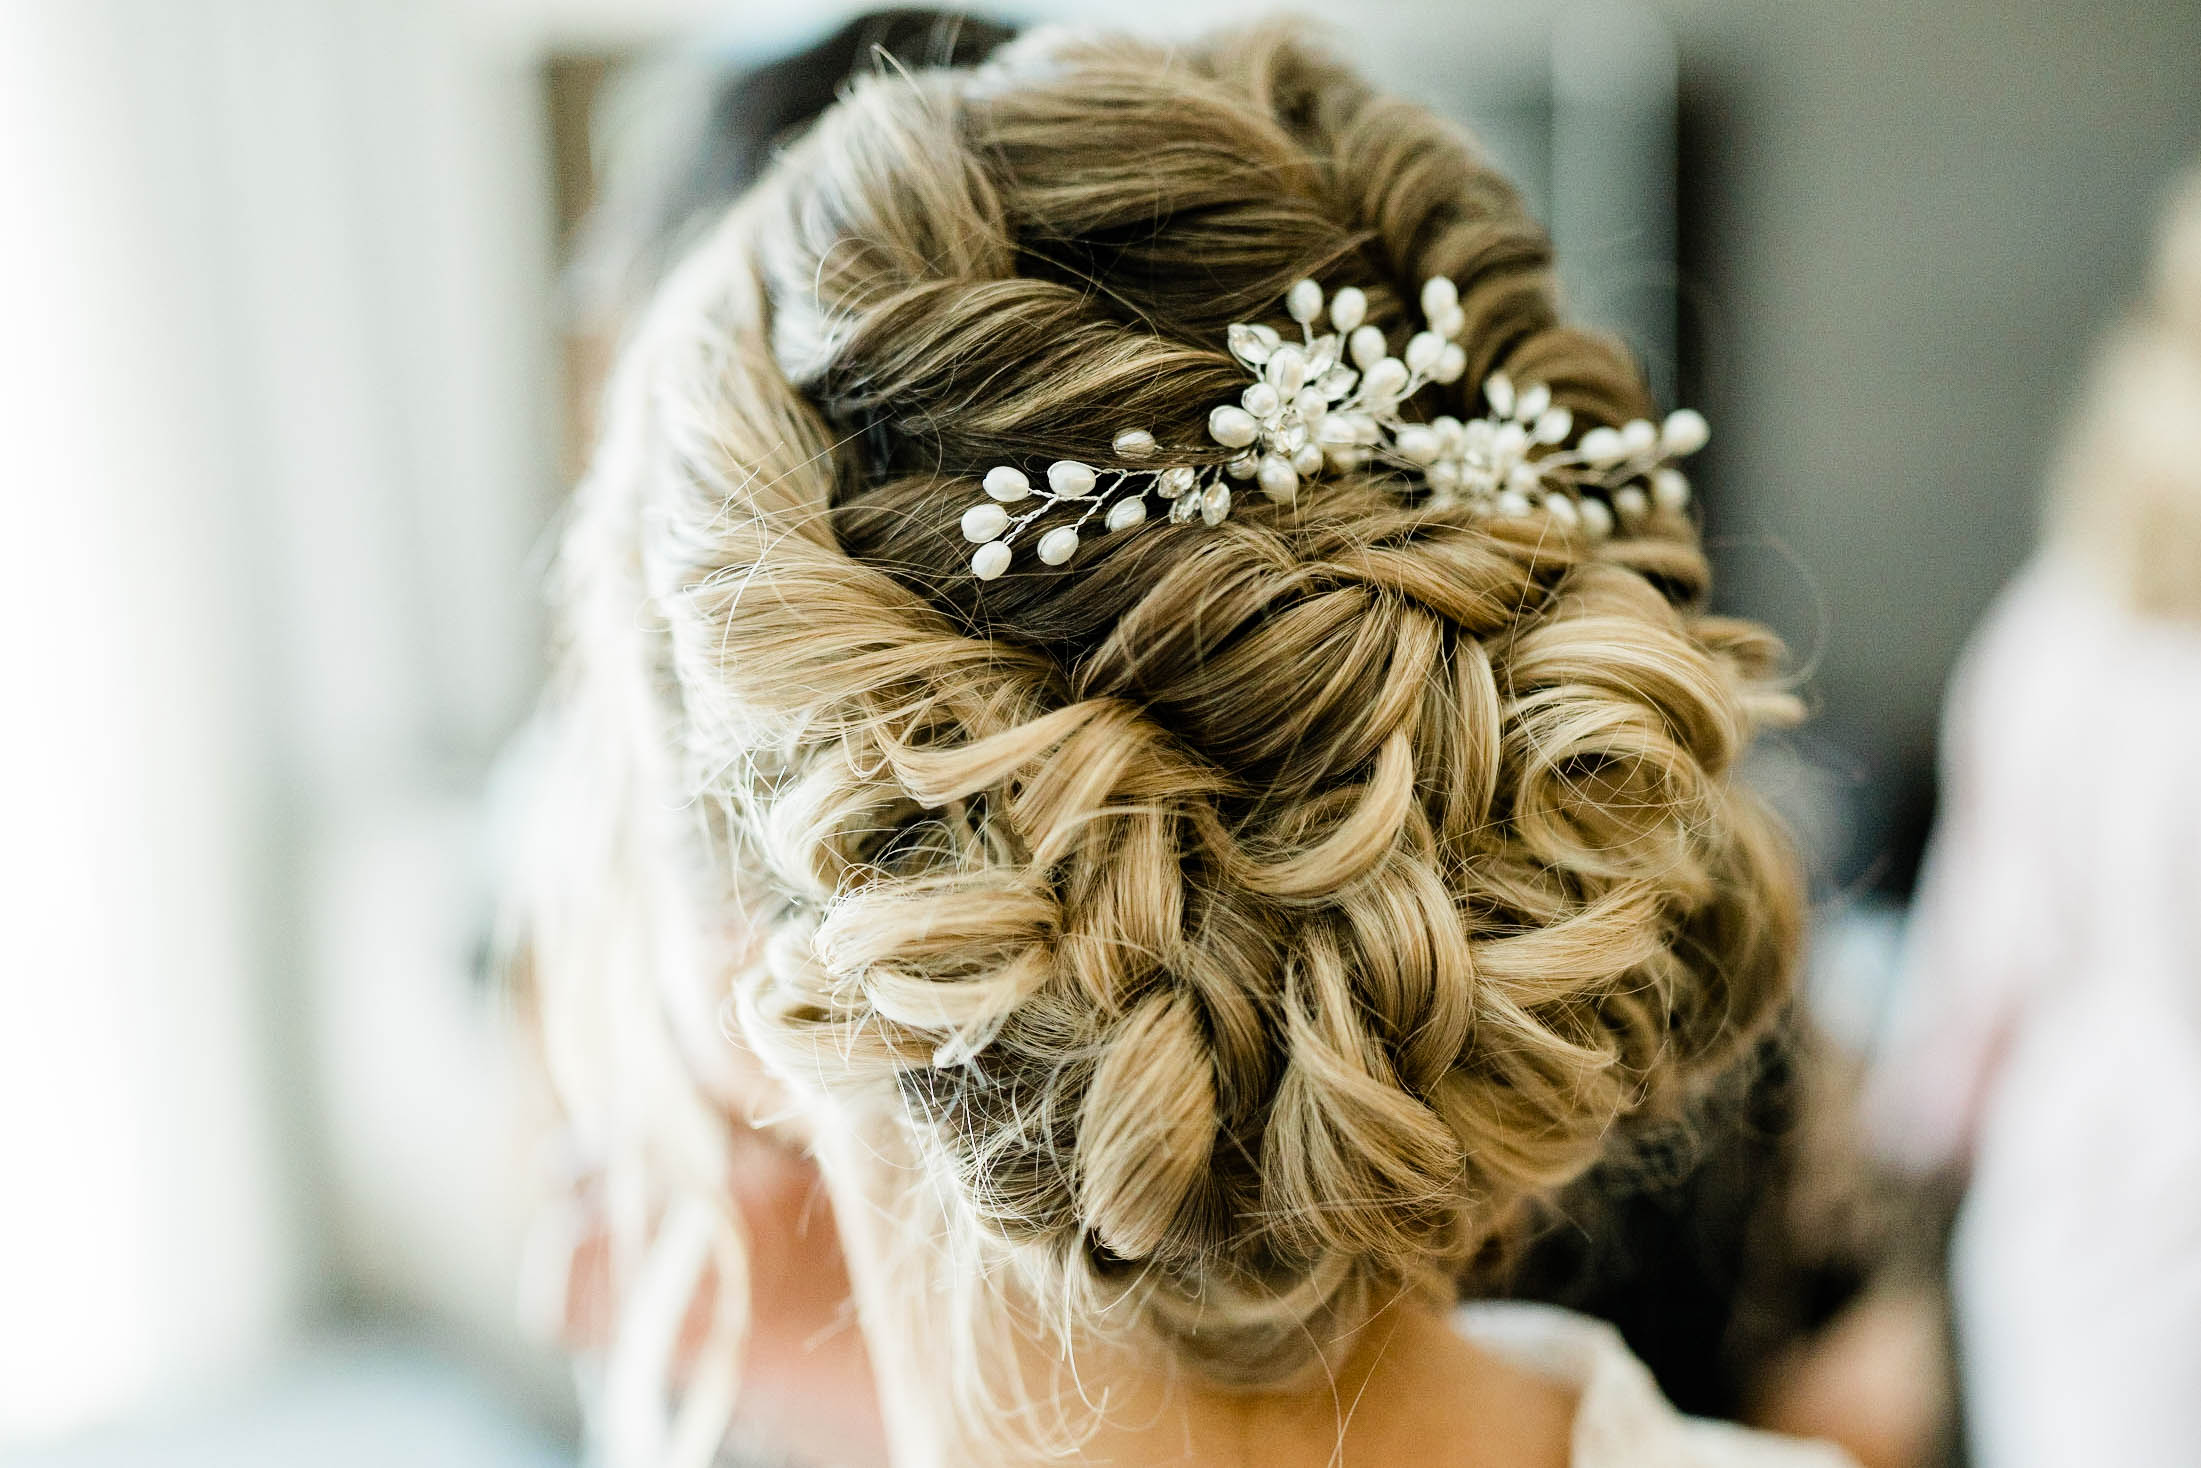 bridal hair before getting married at craven farms